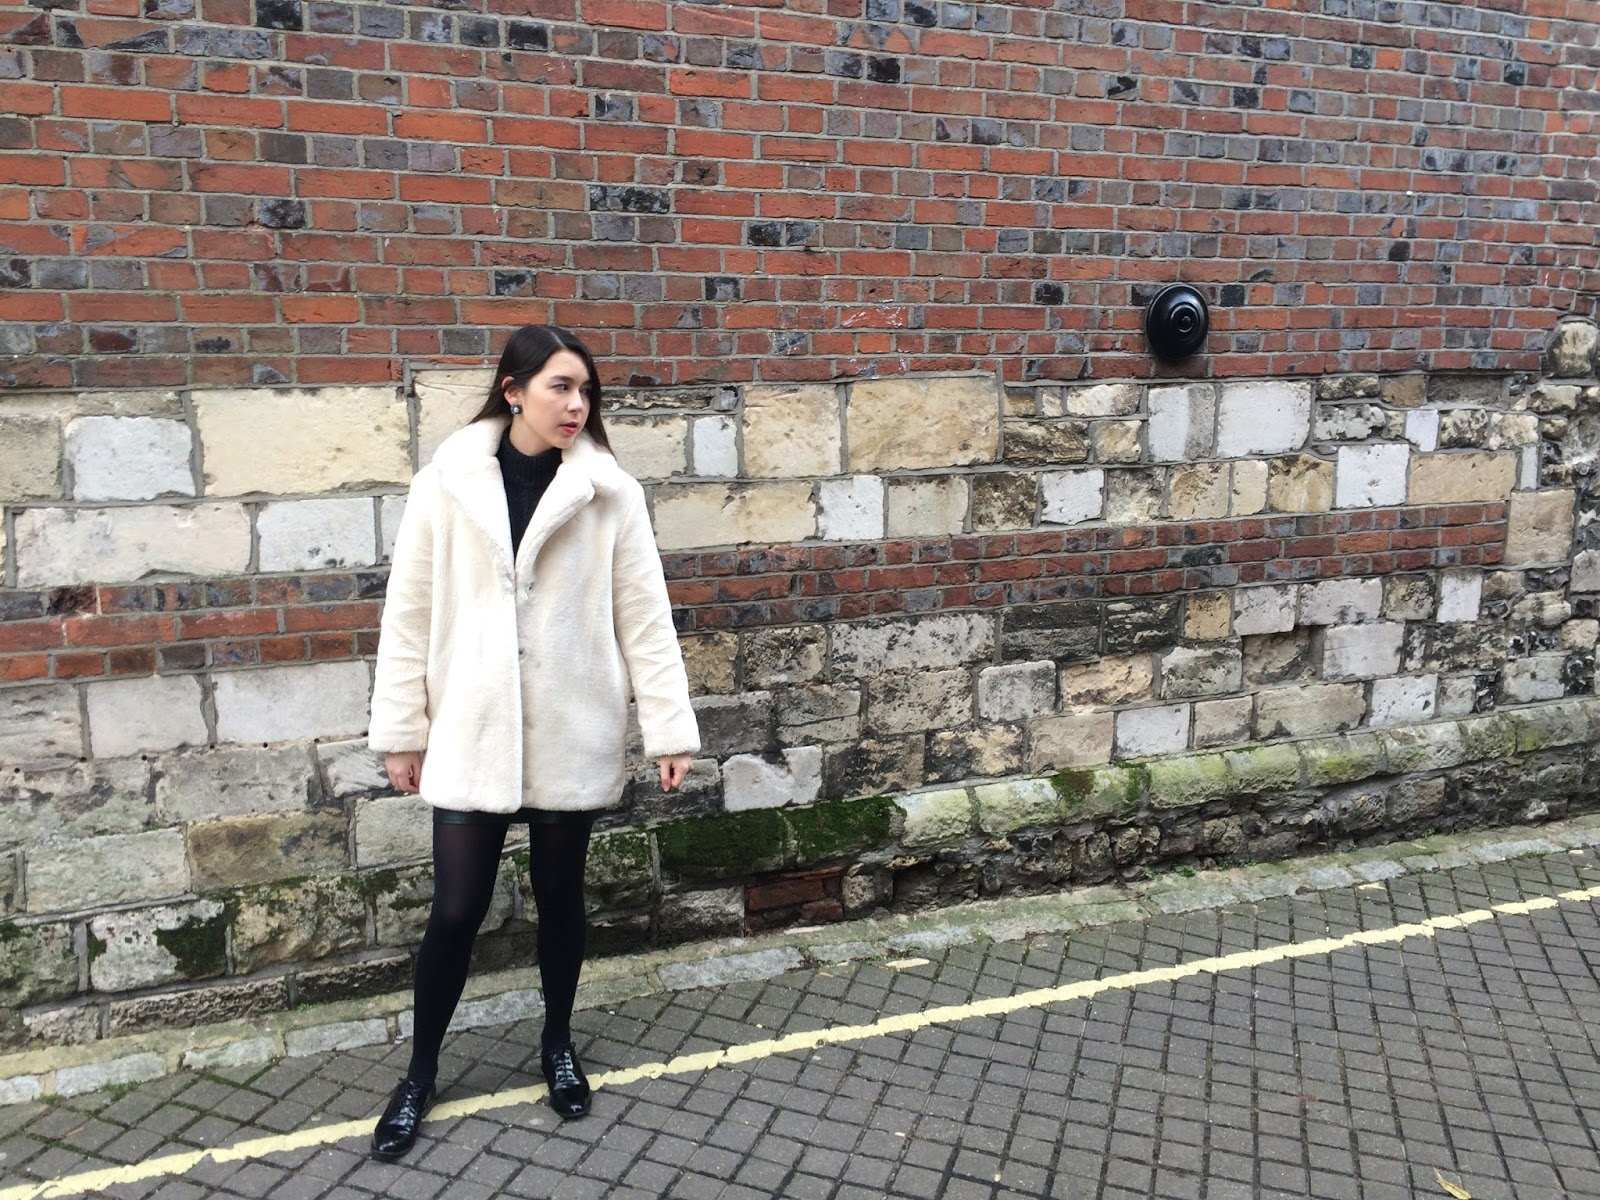 outfit post, ootd, fashion blogger, street style, look, topshop